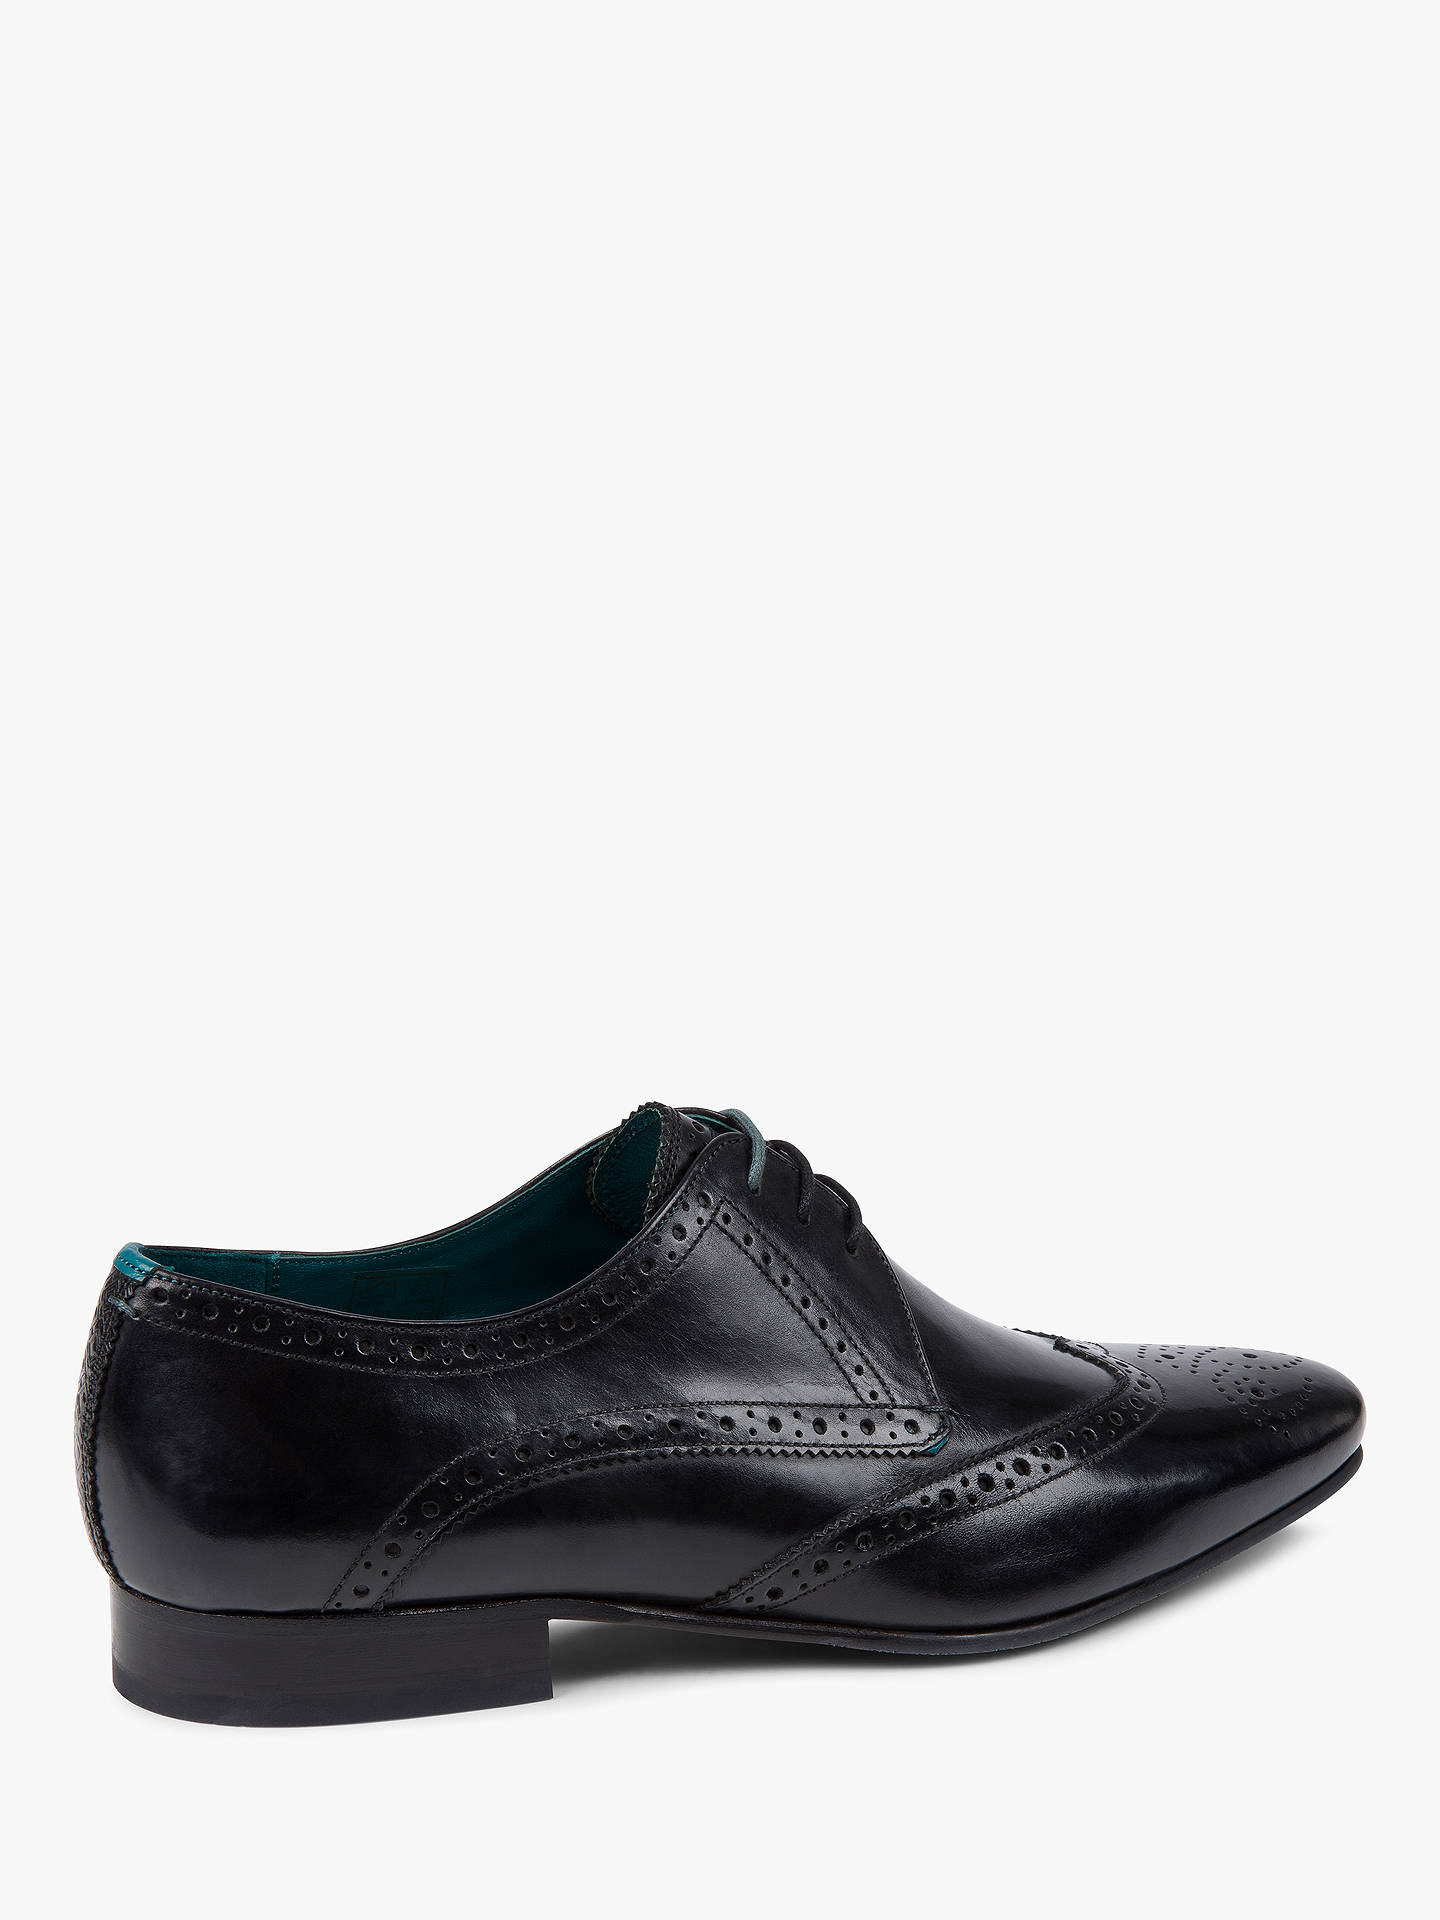 BuyTed Baker Shosei Derby Brogues, Black, 10 Online at johnlewis.com